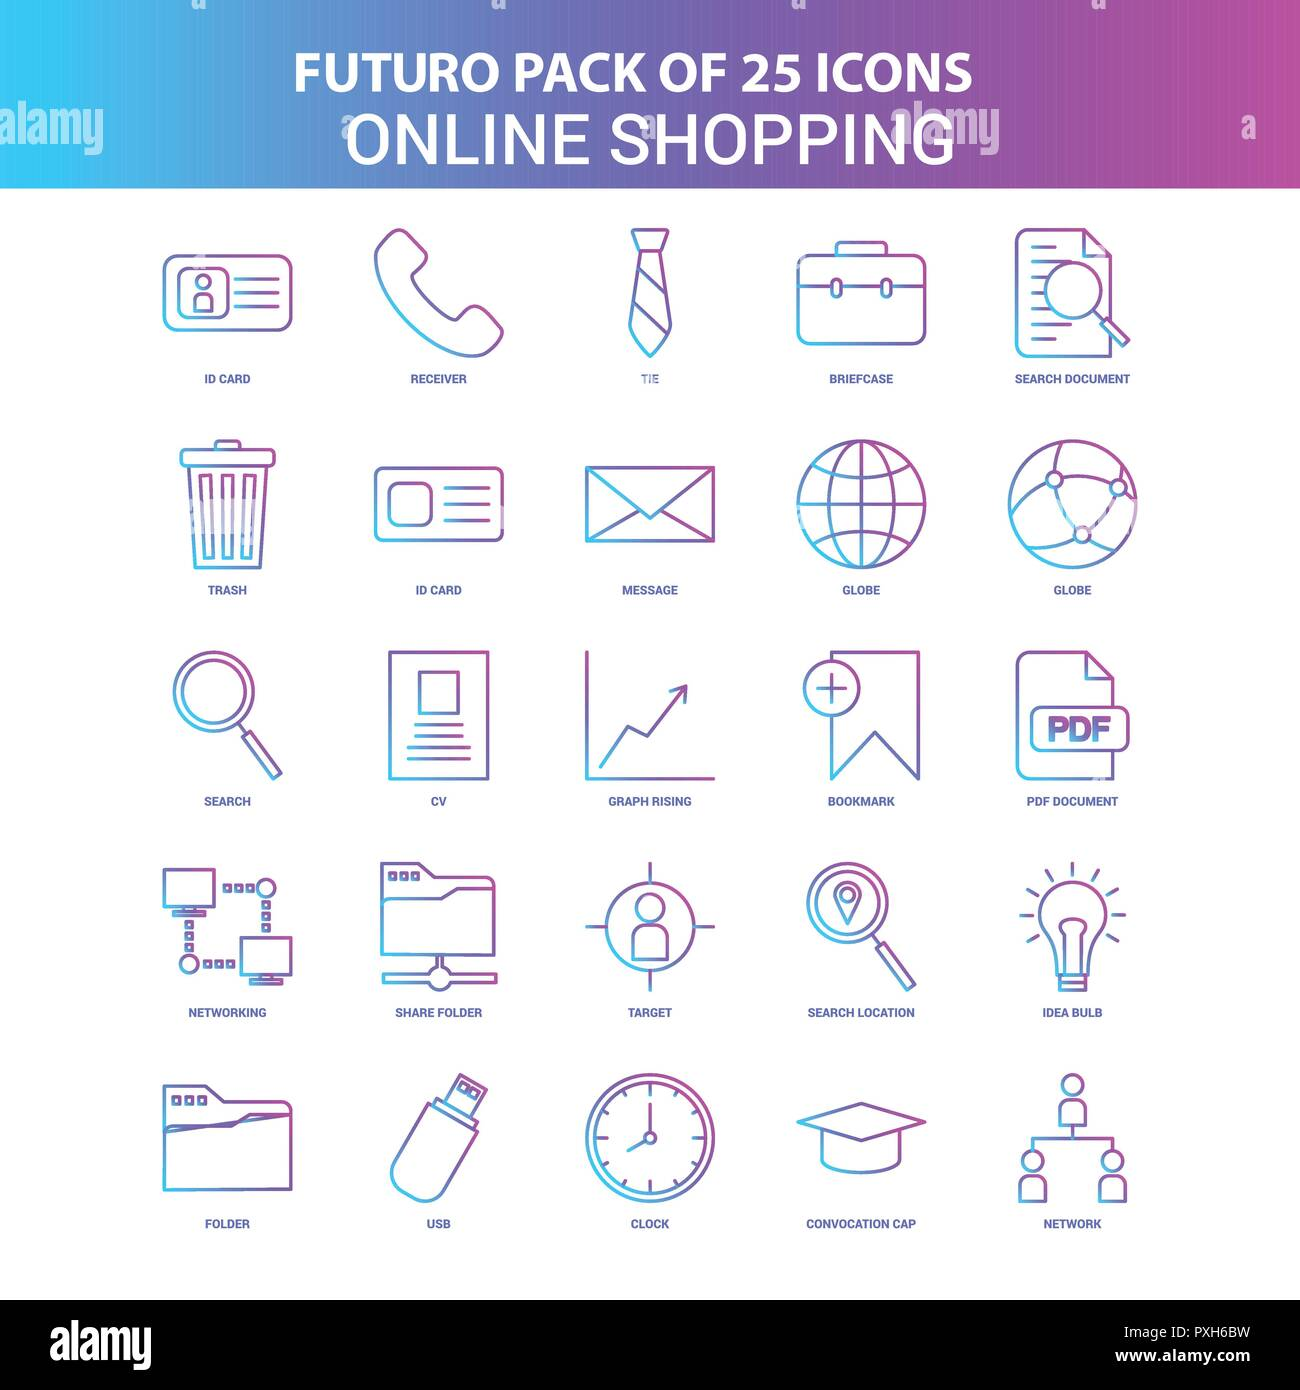 Online Pack 25 Blue And Pink Futuro Online Shopping Icon Pack Stock Vector Art